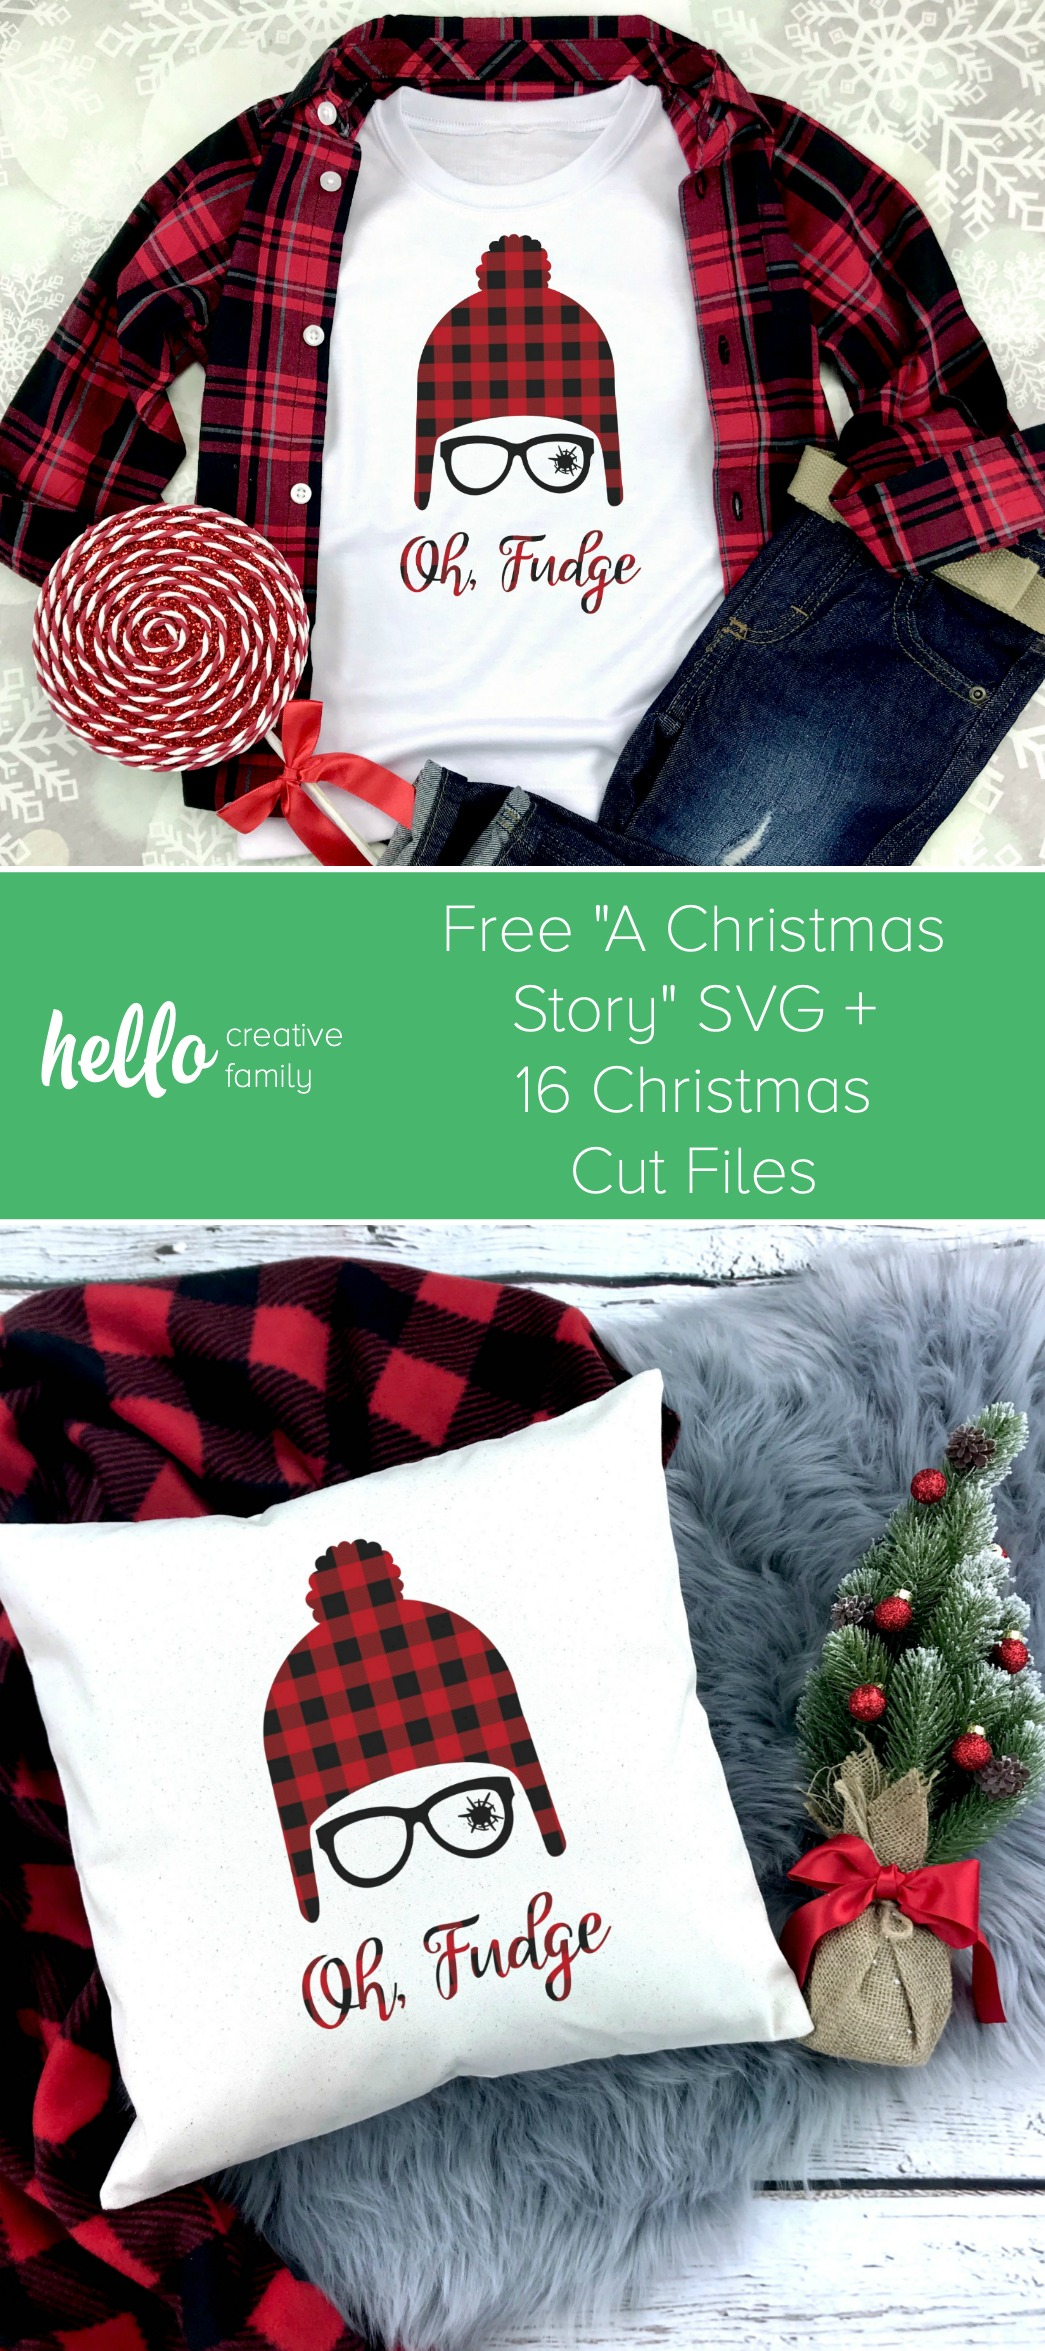 "We're sharing a free A Christmas Story SVG file with one of our favorite movie lines ""Oh Fudge"". Find this cut file along with 15 other Christmas cut files to cut with your Cricut Maker, Cricut Explore or Silhouette! #Cricut #Christmas #AChristmasStory #FreeSVG"